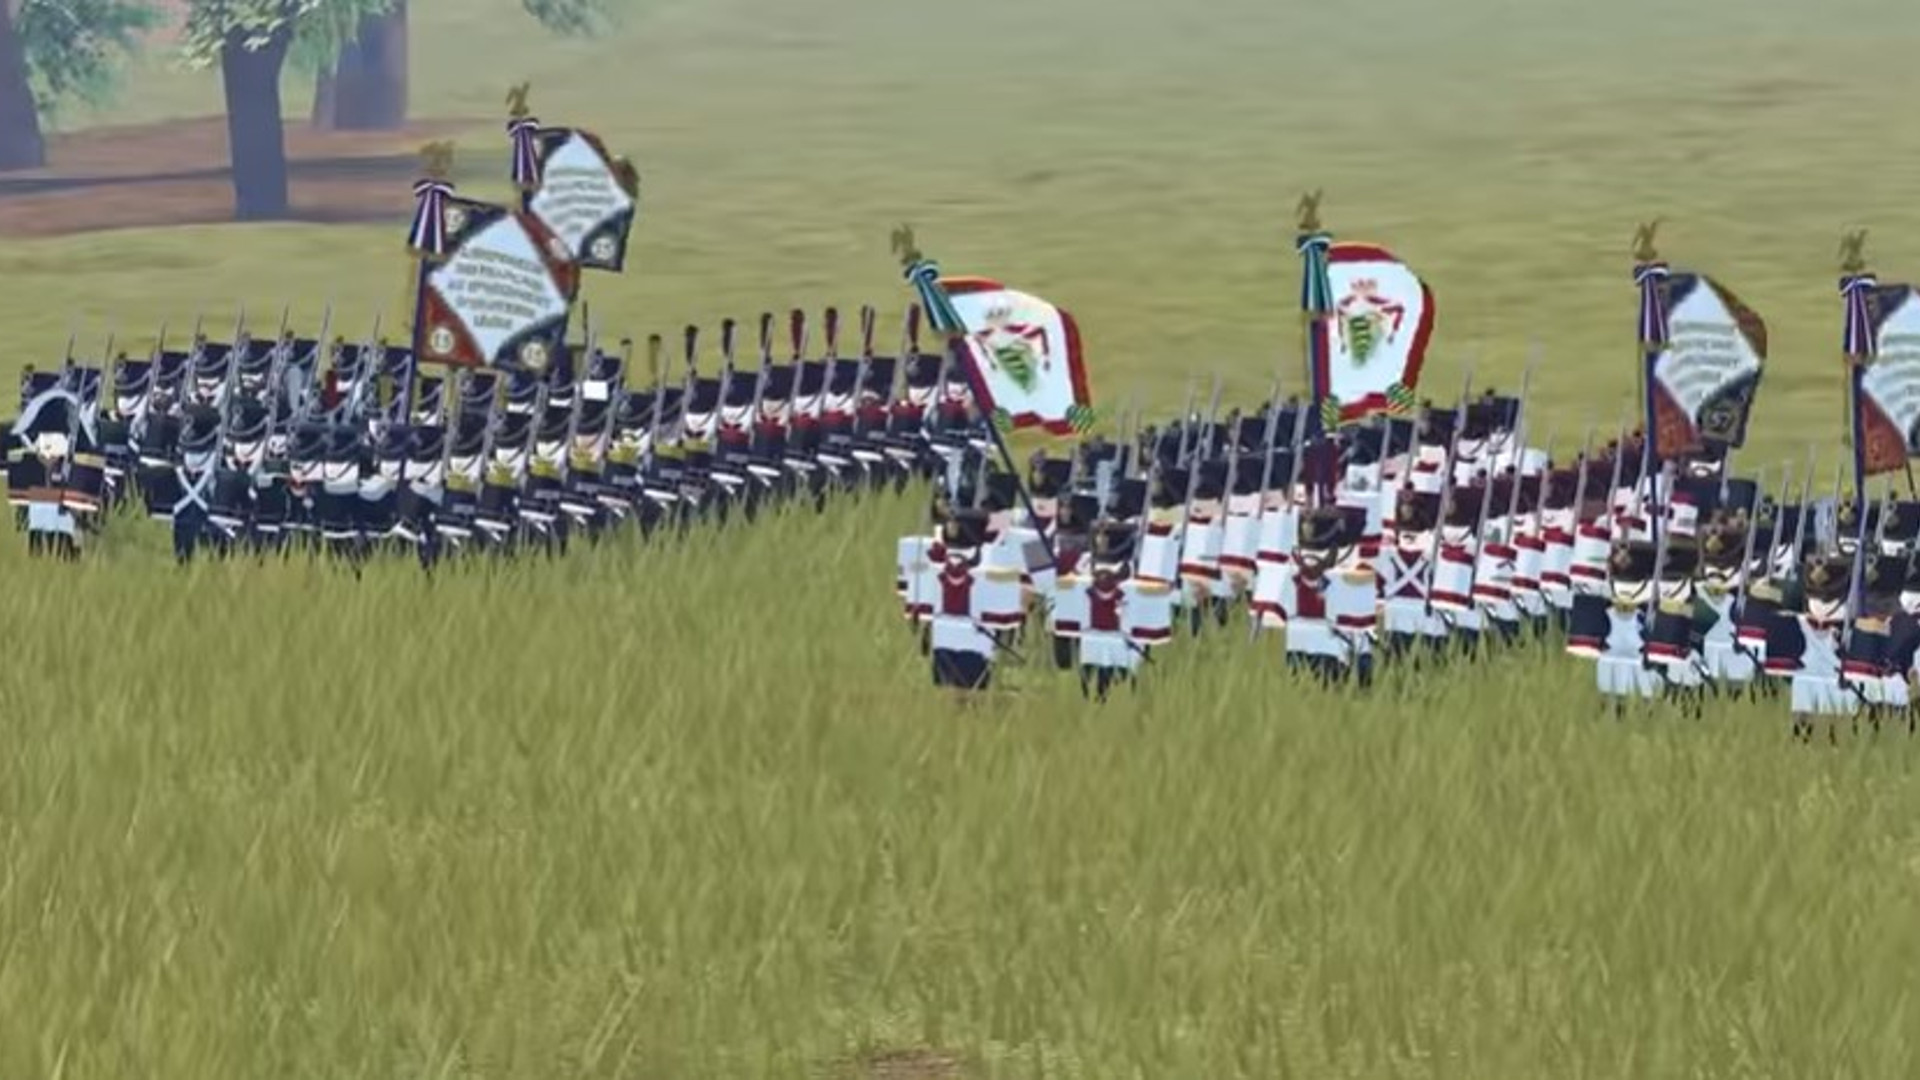 Recreate the Battle of Waterloo in this Roblox game